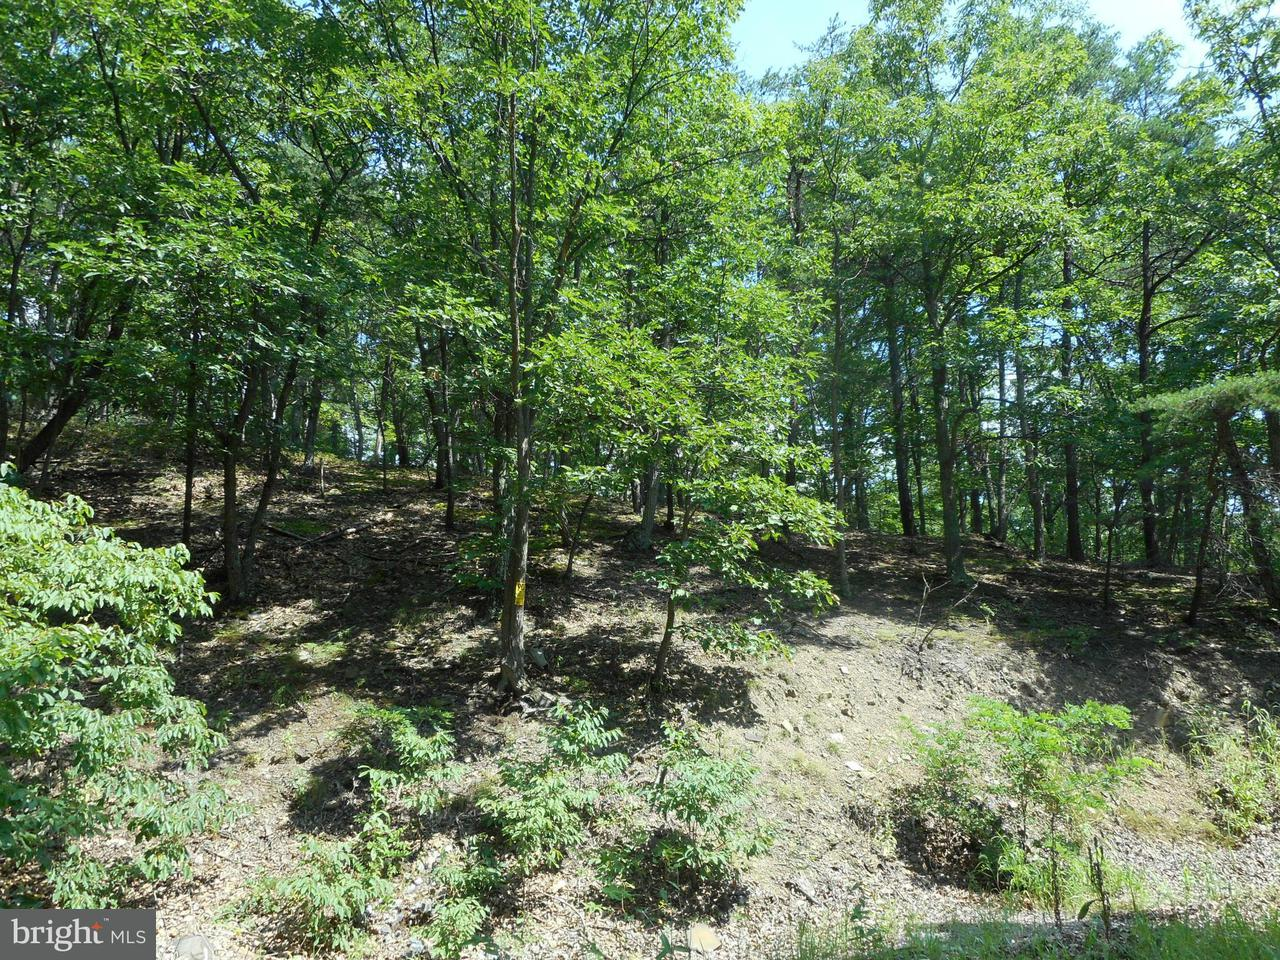 Additional photo for property listing at Off Rt 28 /pPssin wWnd hH  Springfield, West Virginia 26763 United States